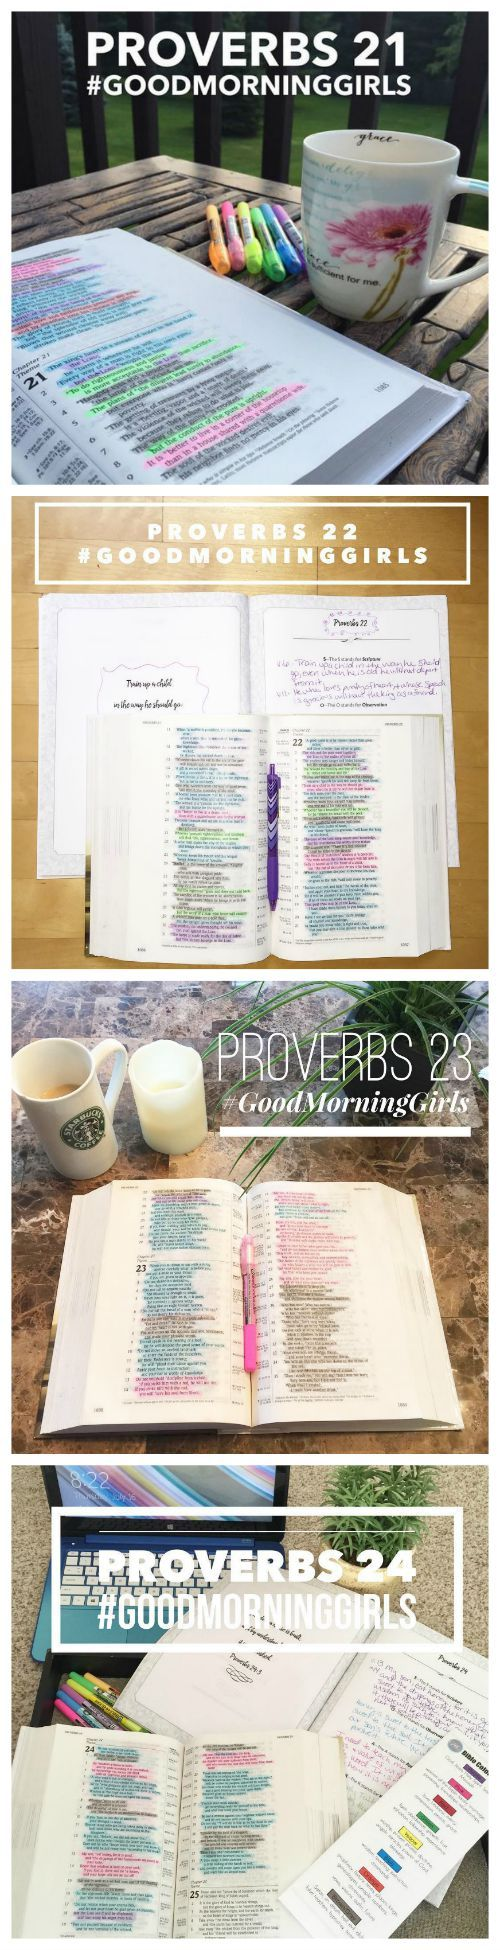 Join the #GoodMorningGirls community as we study God's word together!